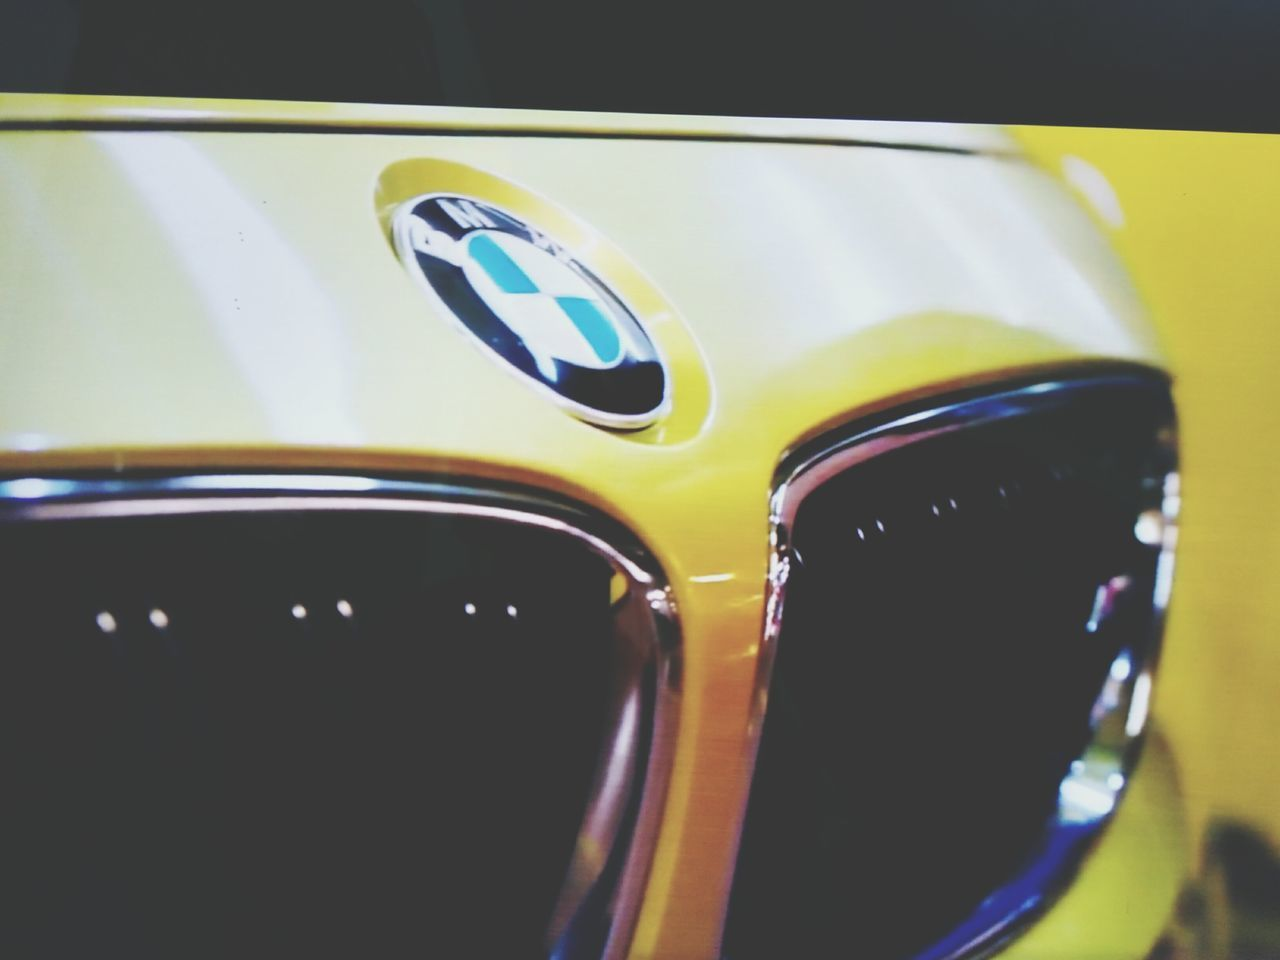 Bmw M4 Mydreamcar Joy Is Timeless Joy Is Eternal Joy Is Bmw myvision Myworld